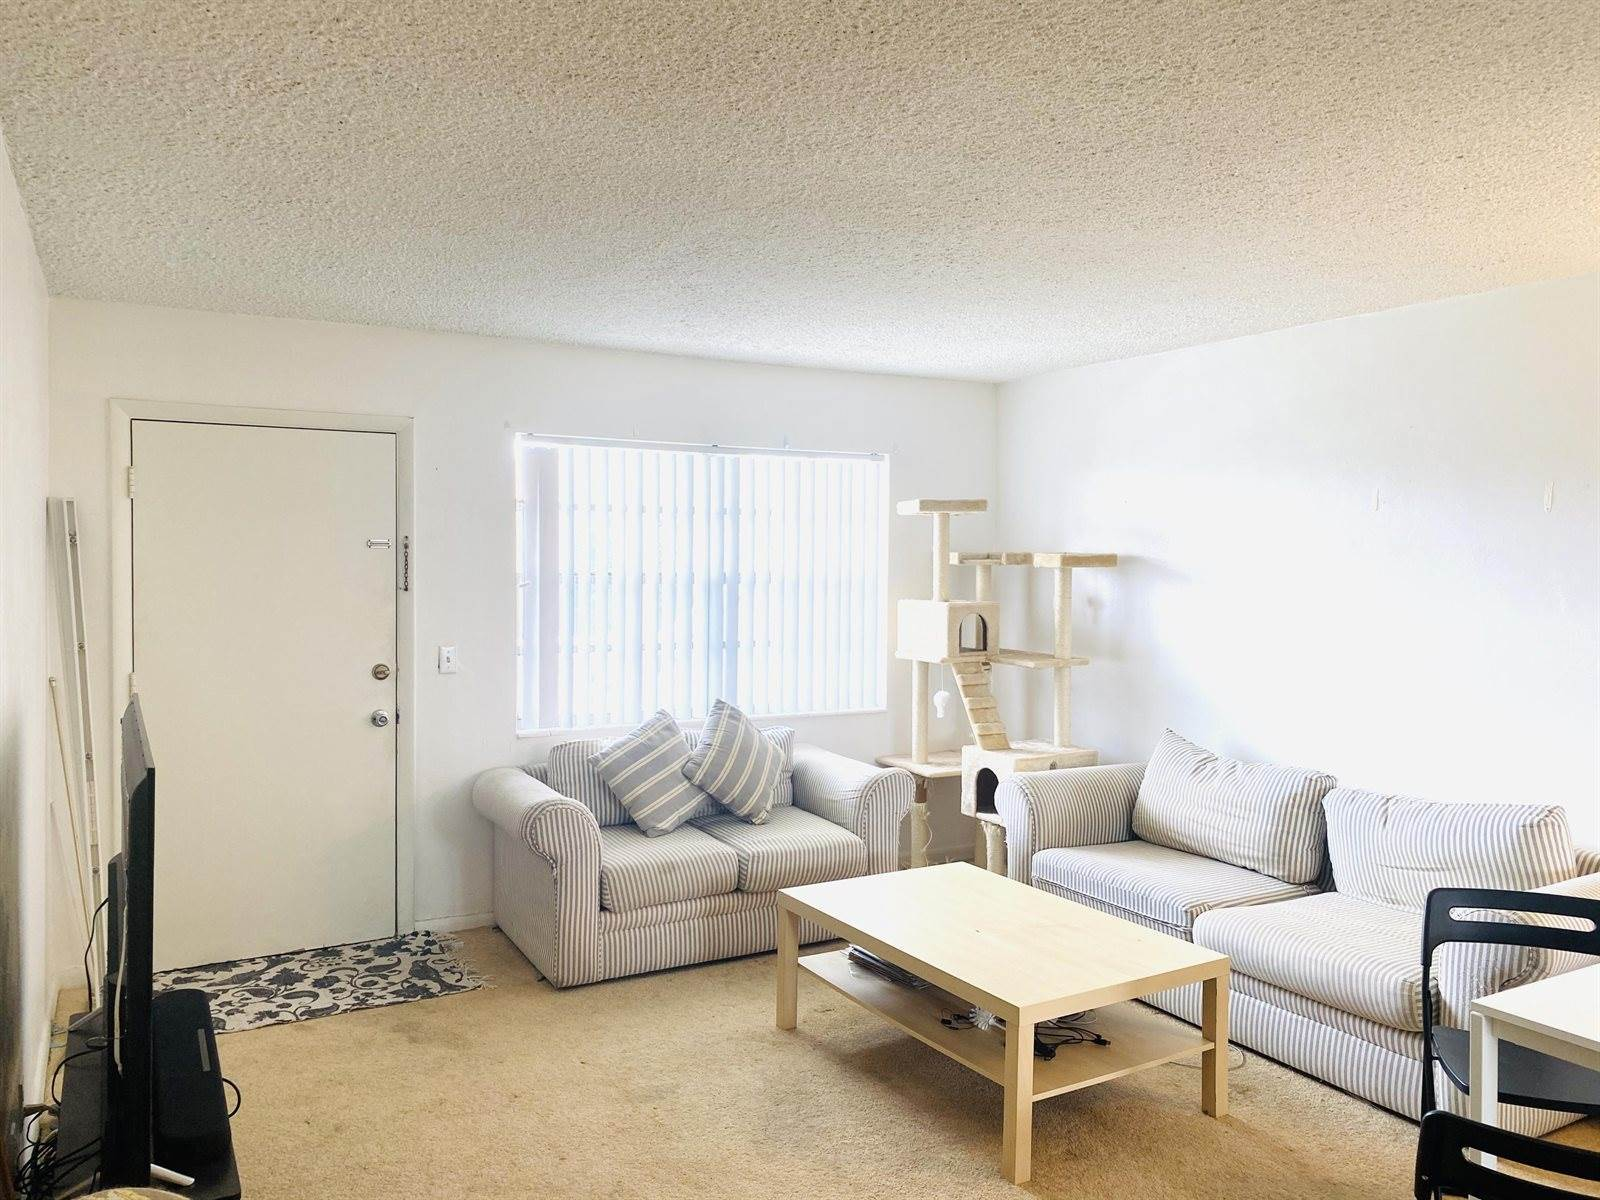 3915 South Flagler Drive, #220, West Palm Beach, FL 33405